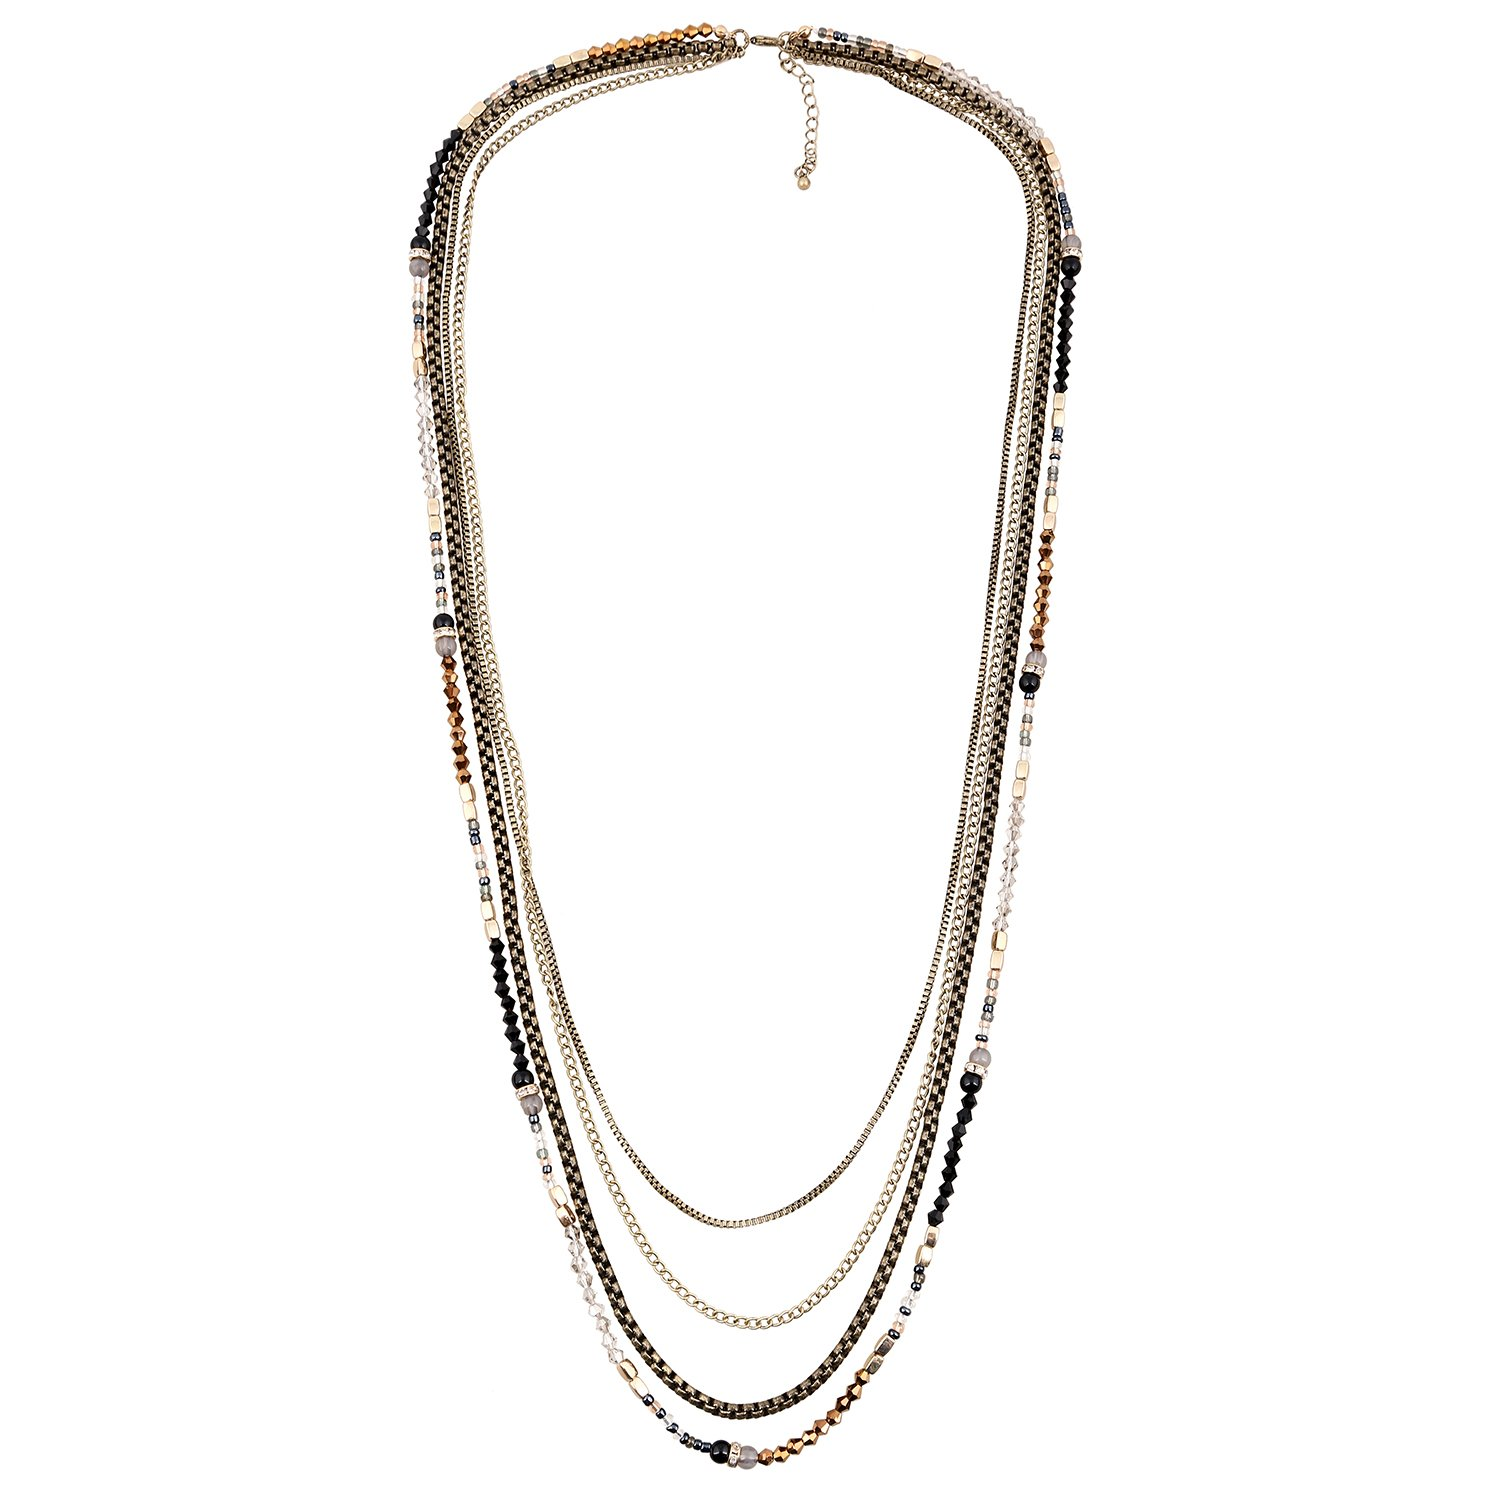 D EXCEED Jewelry Womens Multi Strand Necklace Glass Beaded Sweater Neck Chain Necklace Black